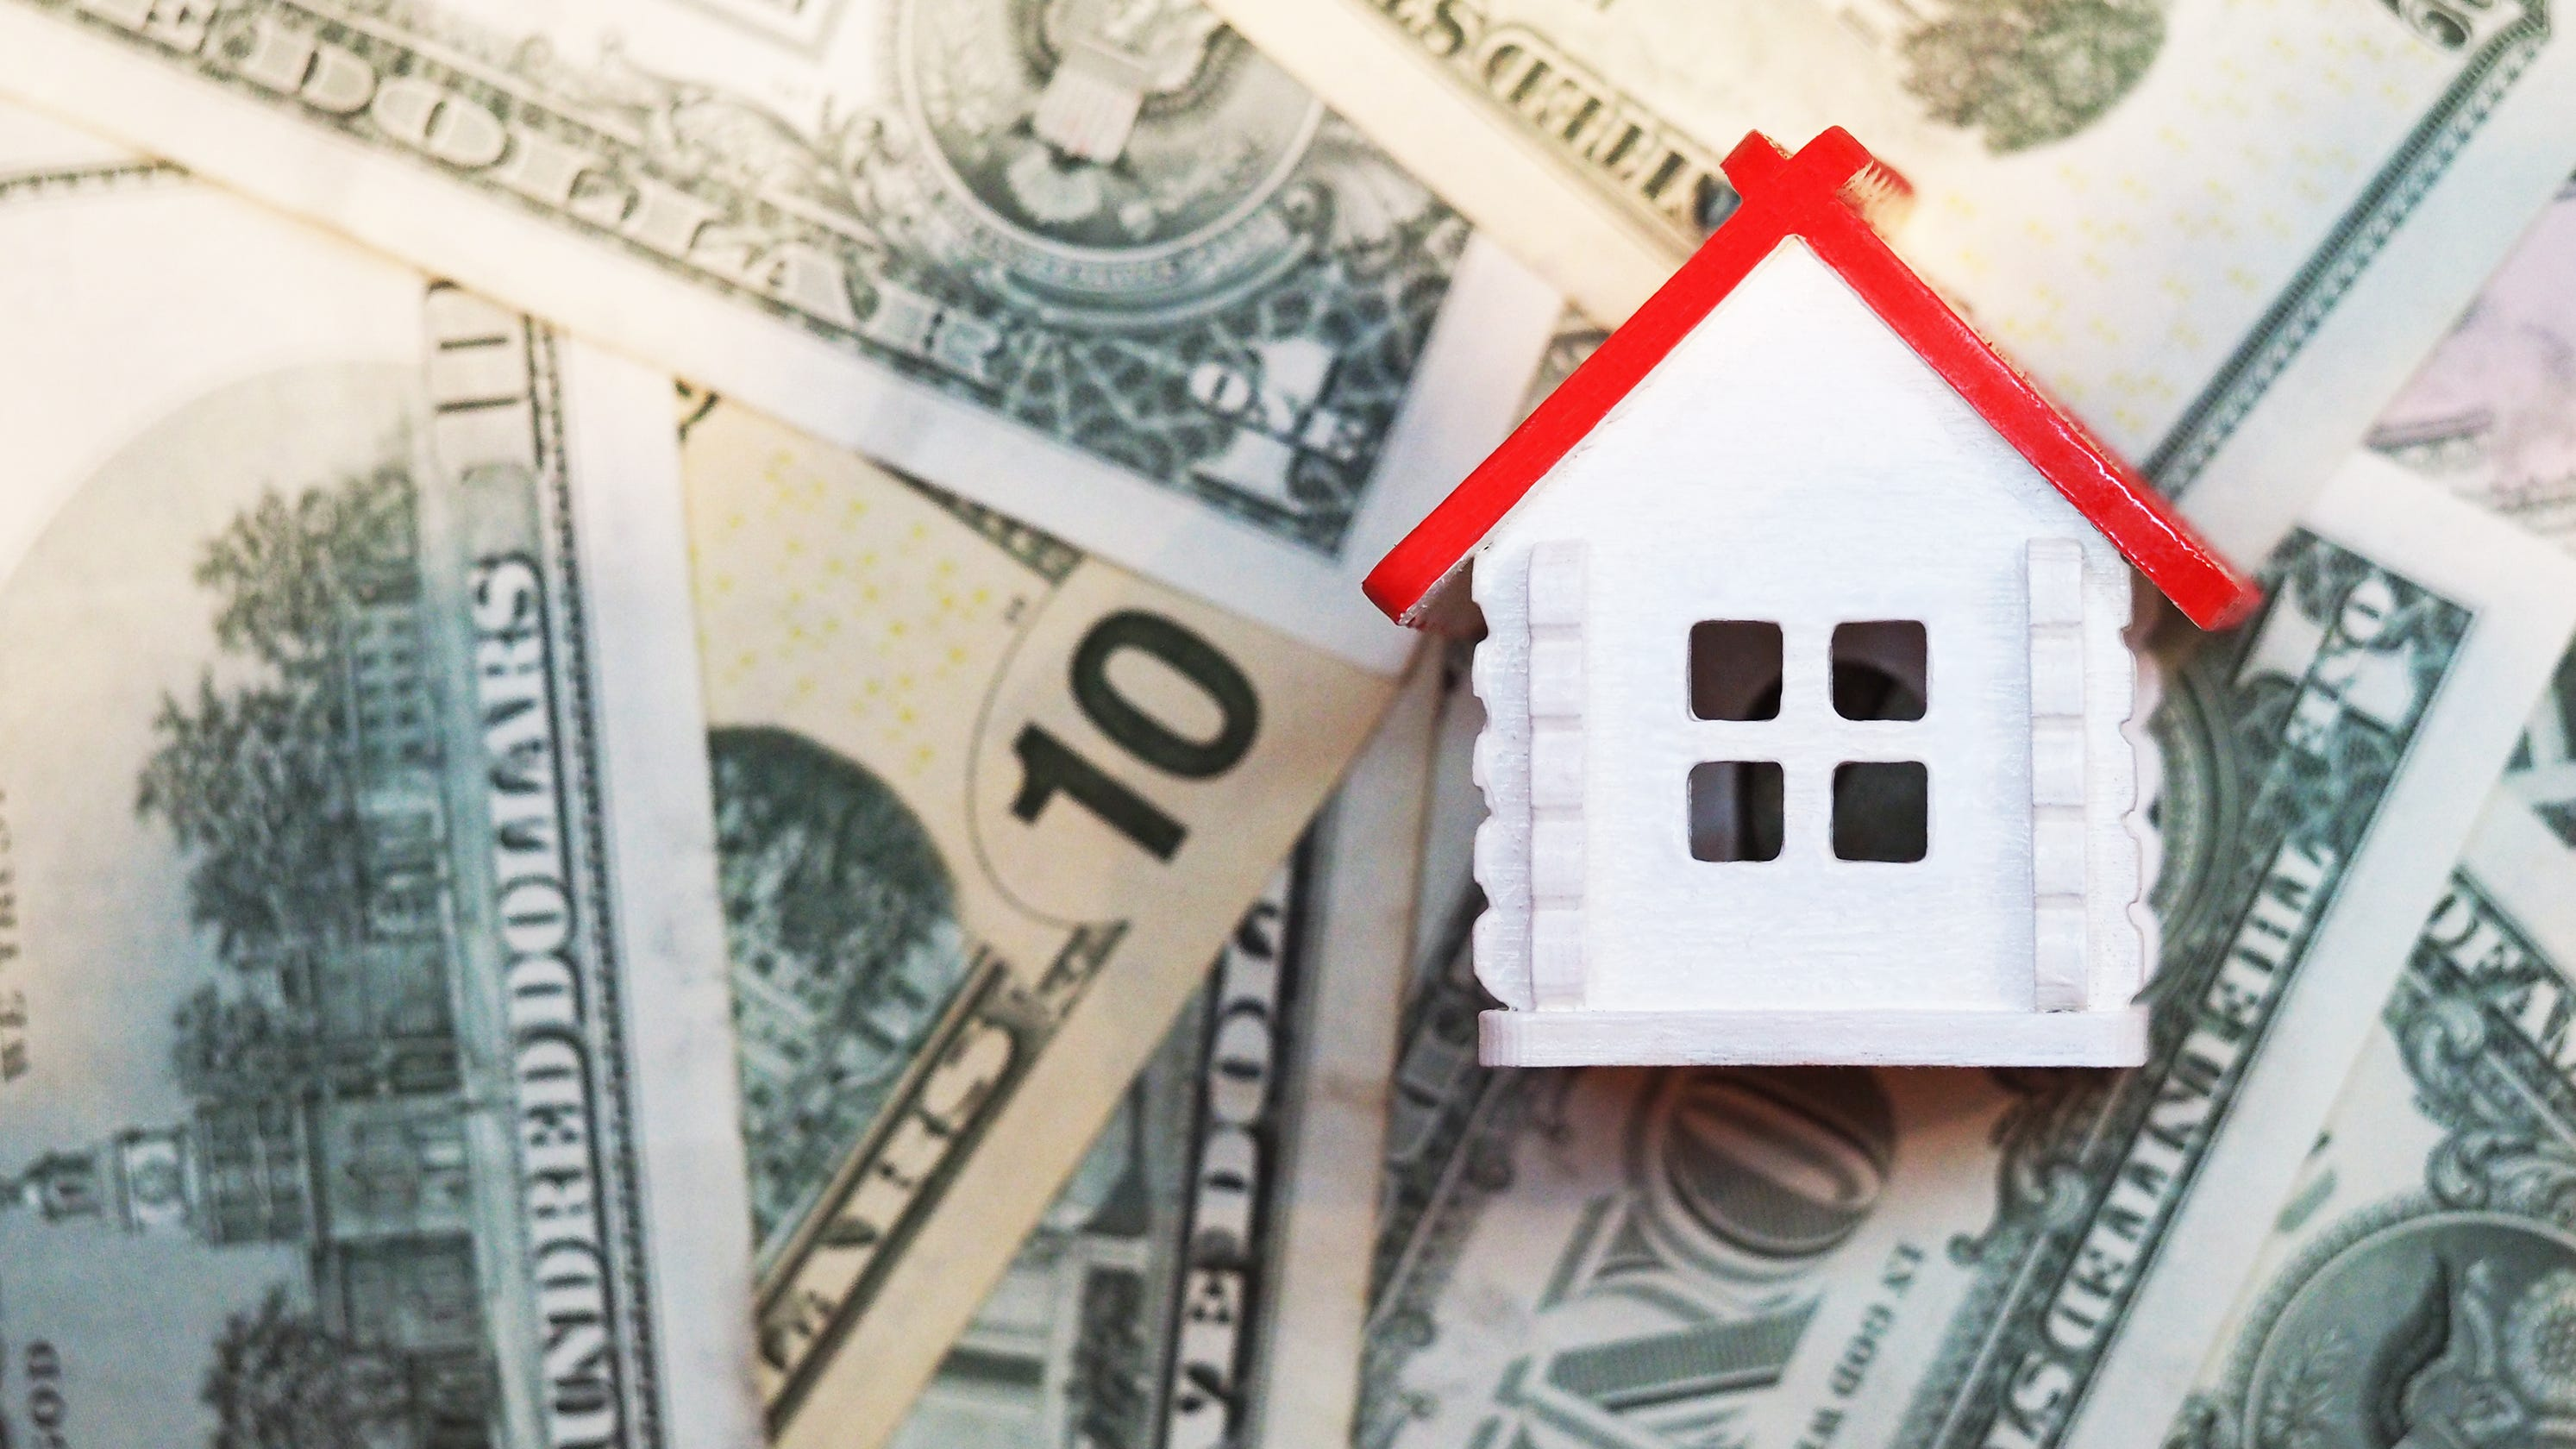 How to find mortgage relief during the coronavirus crisis